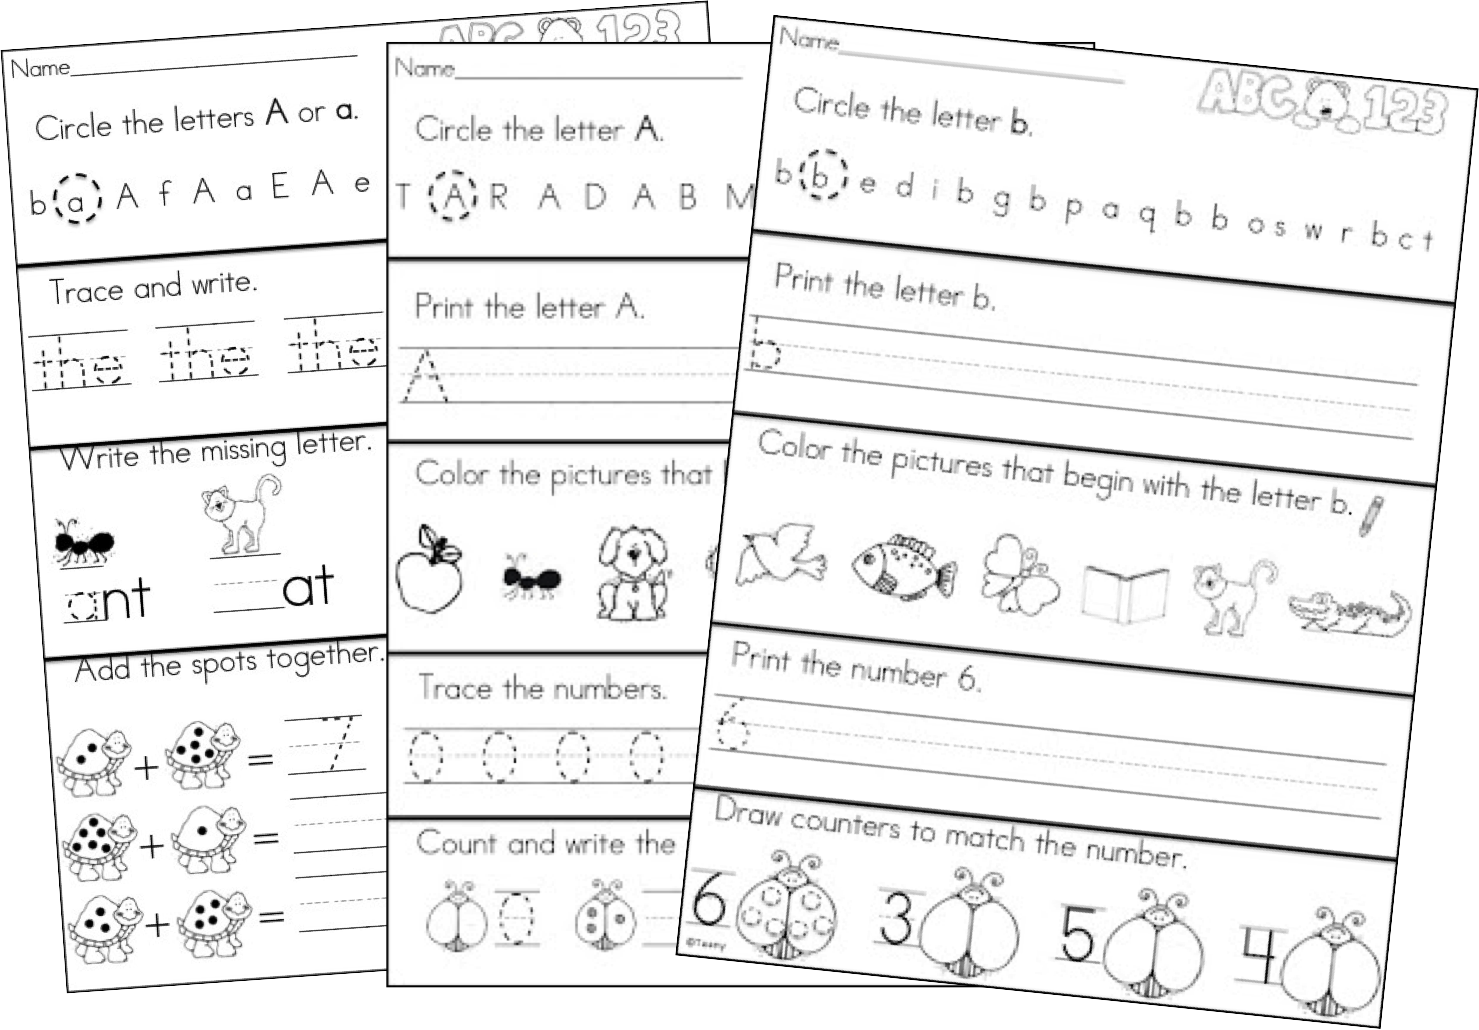 http://www.teacherspayteachers.com/Product/Kindergarten-Morning-Work-Daily-Language-Arts-and-Math-Review-466854